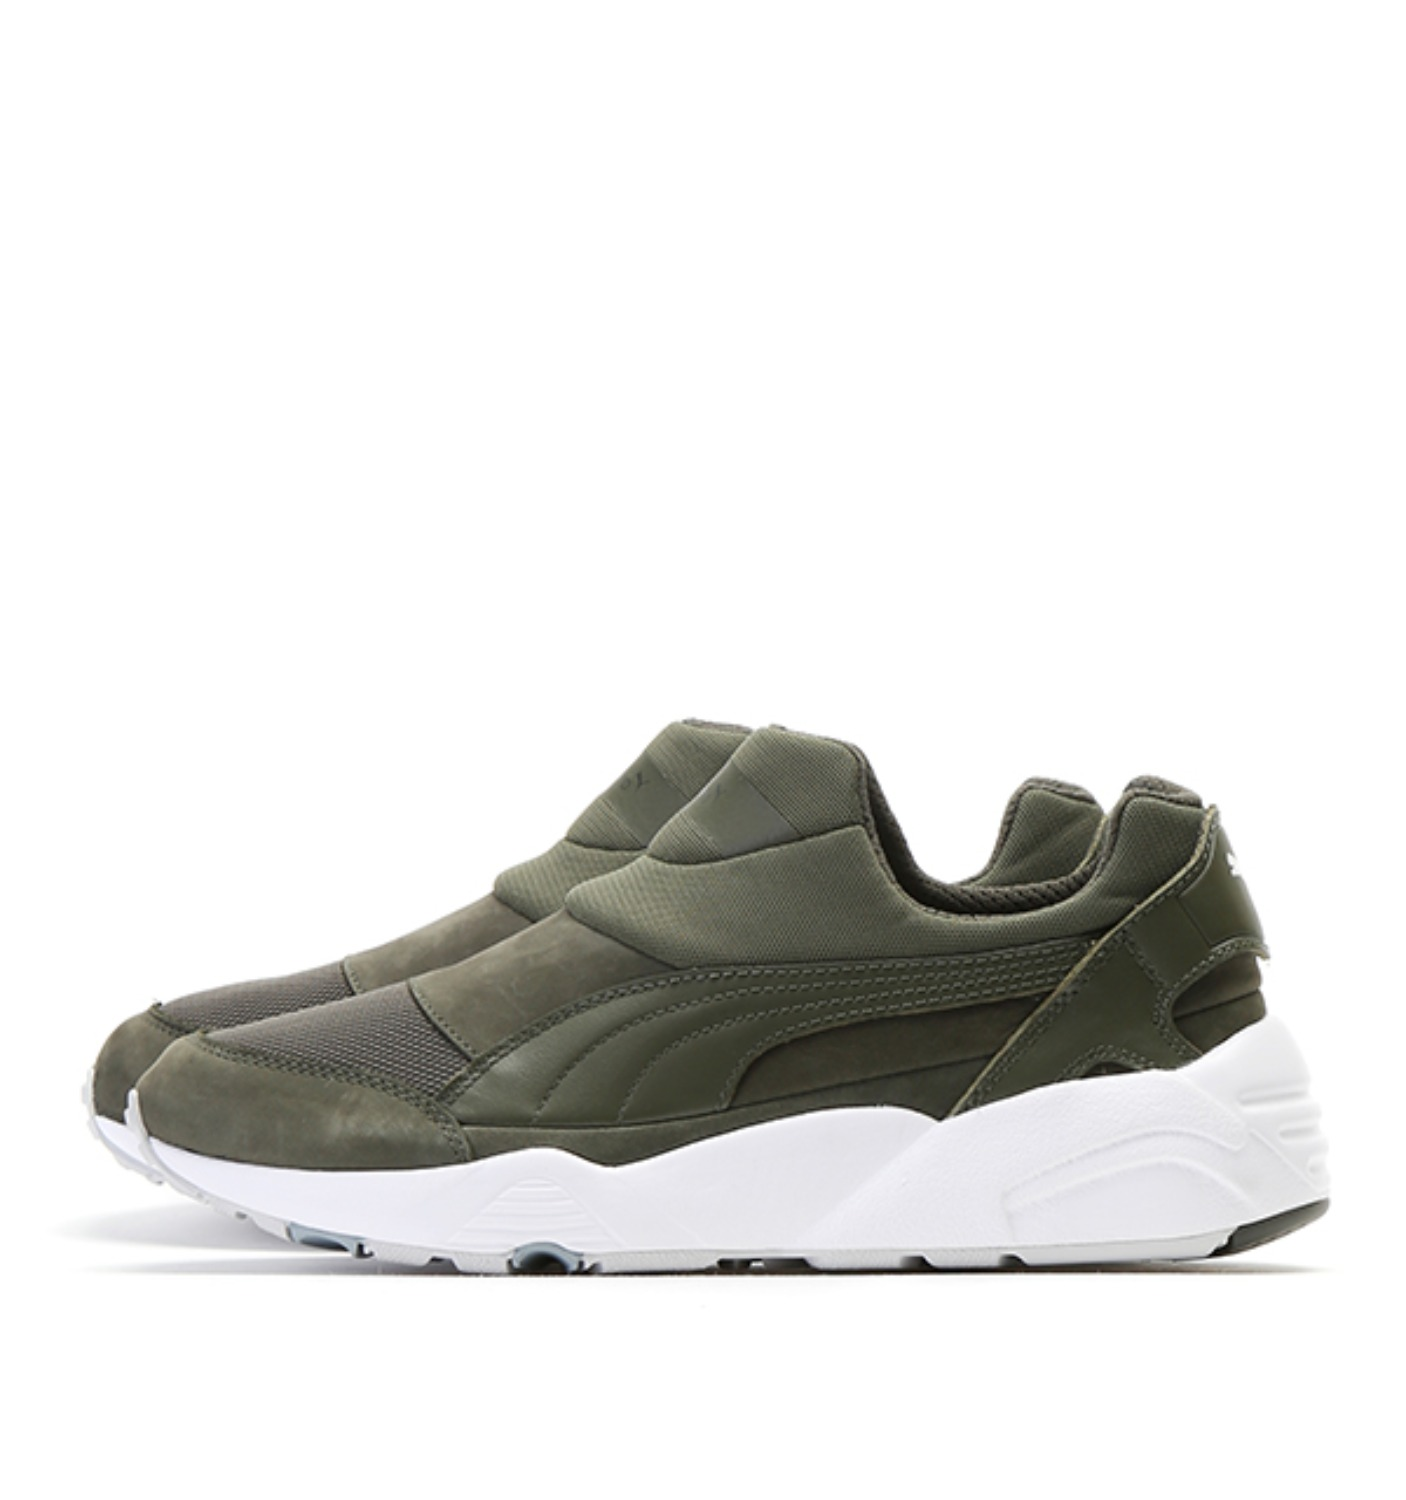 TRINOMIC SOCK NM X STAMPD OLIVE